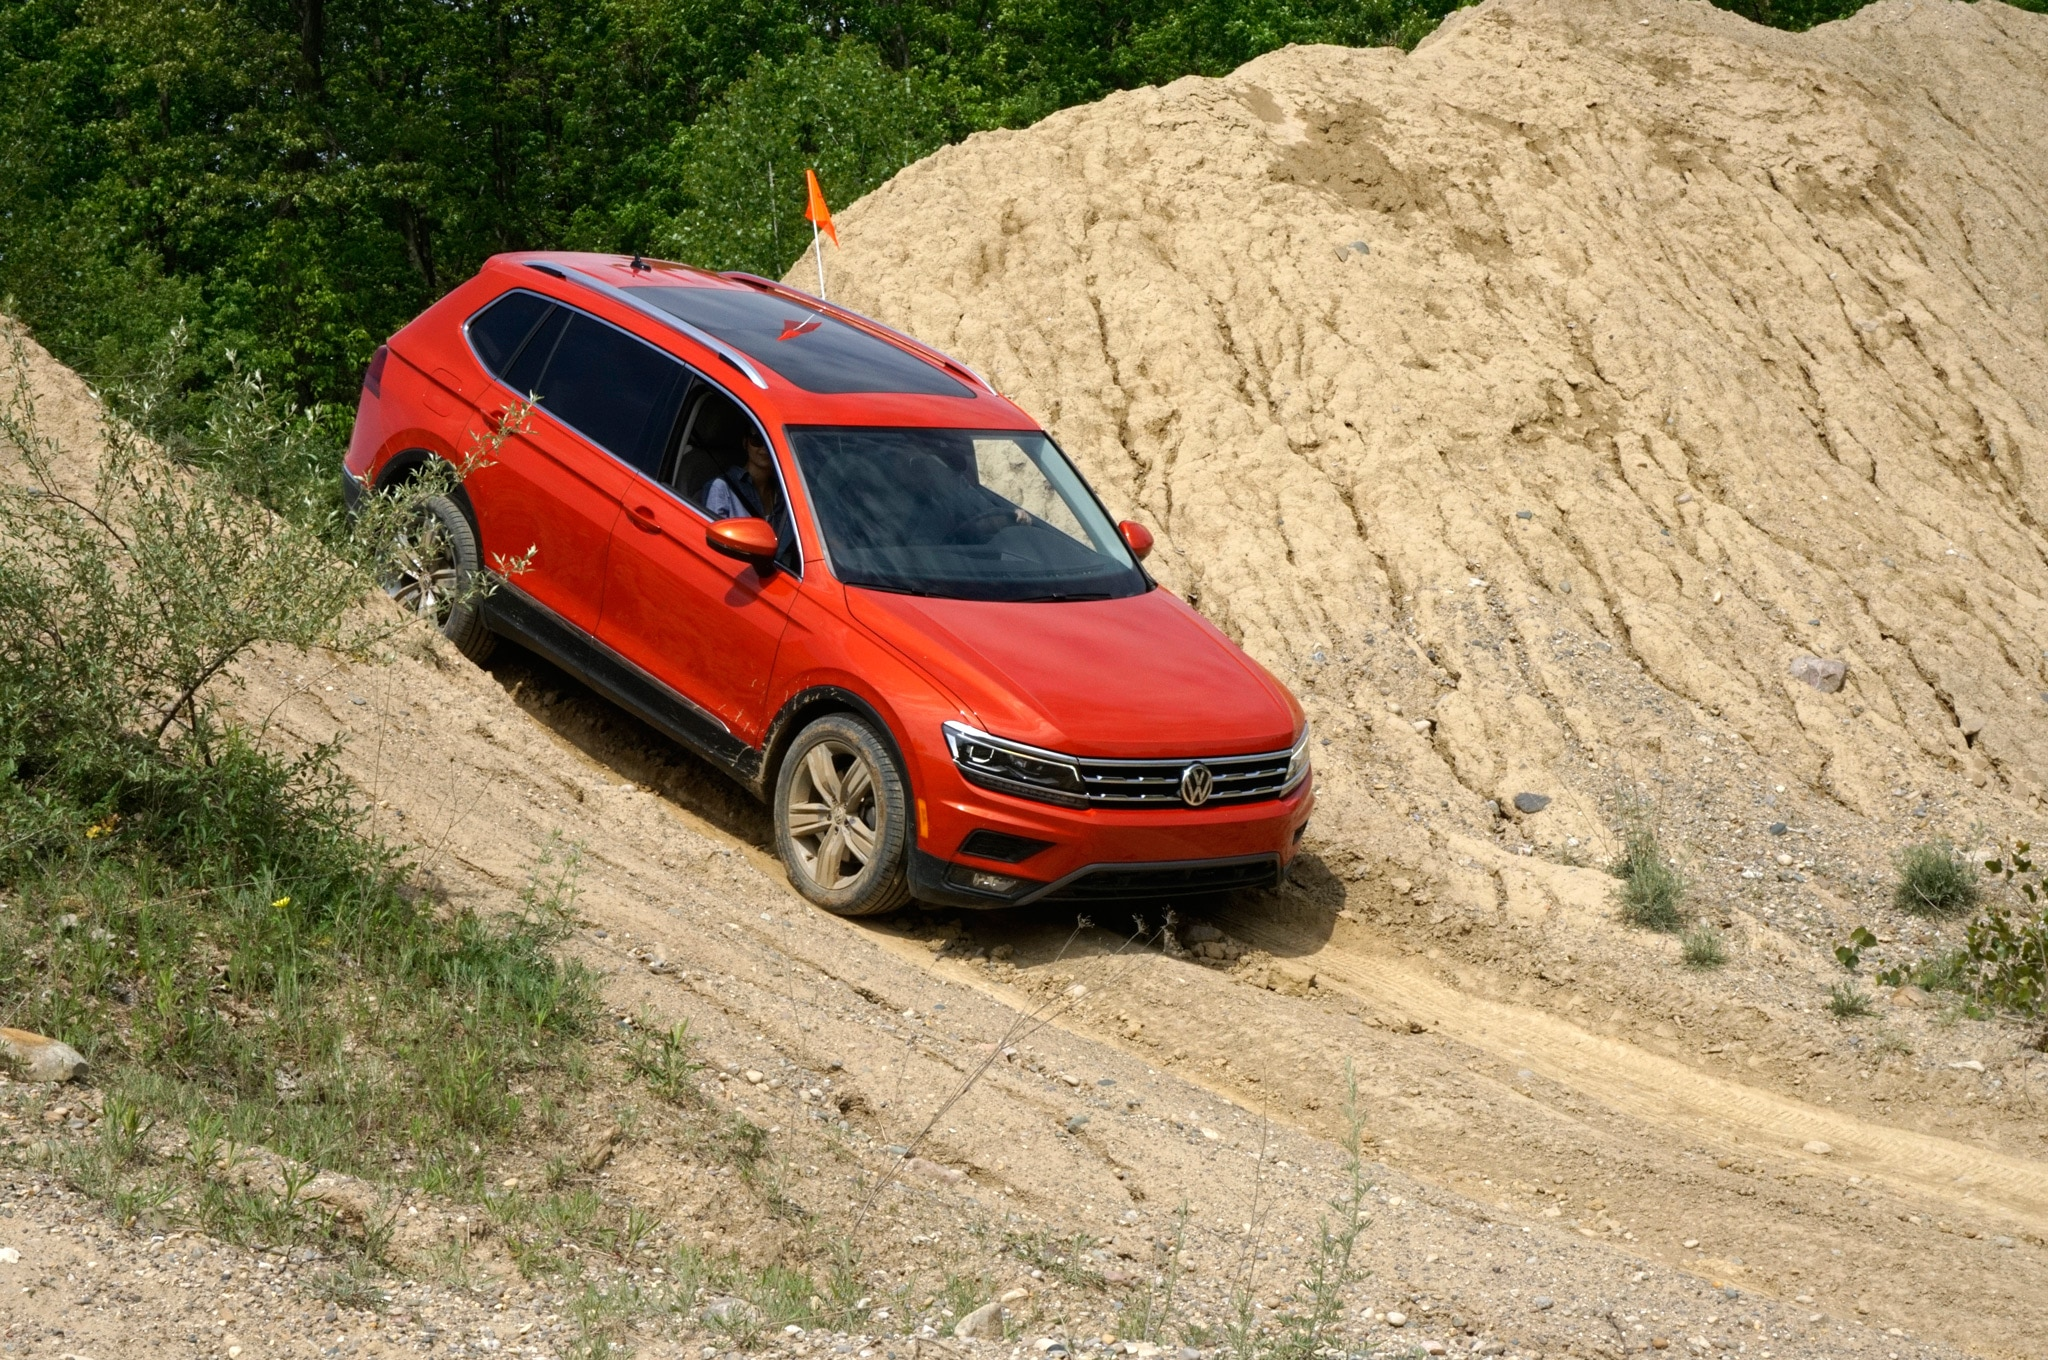 2018 Volkswagen Tiguan 4Motion Front Three Quarter 01